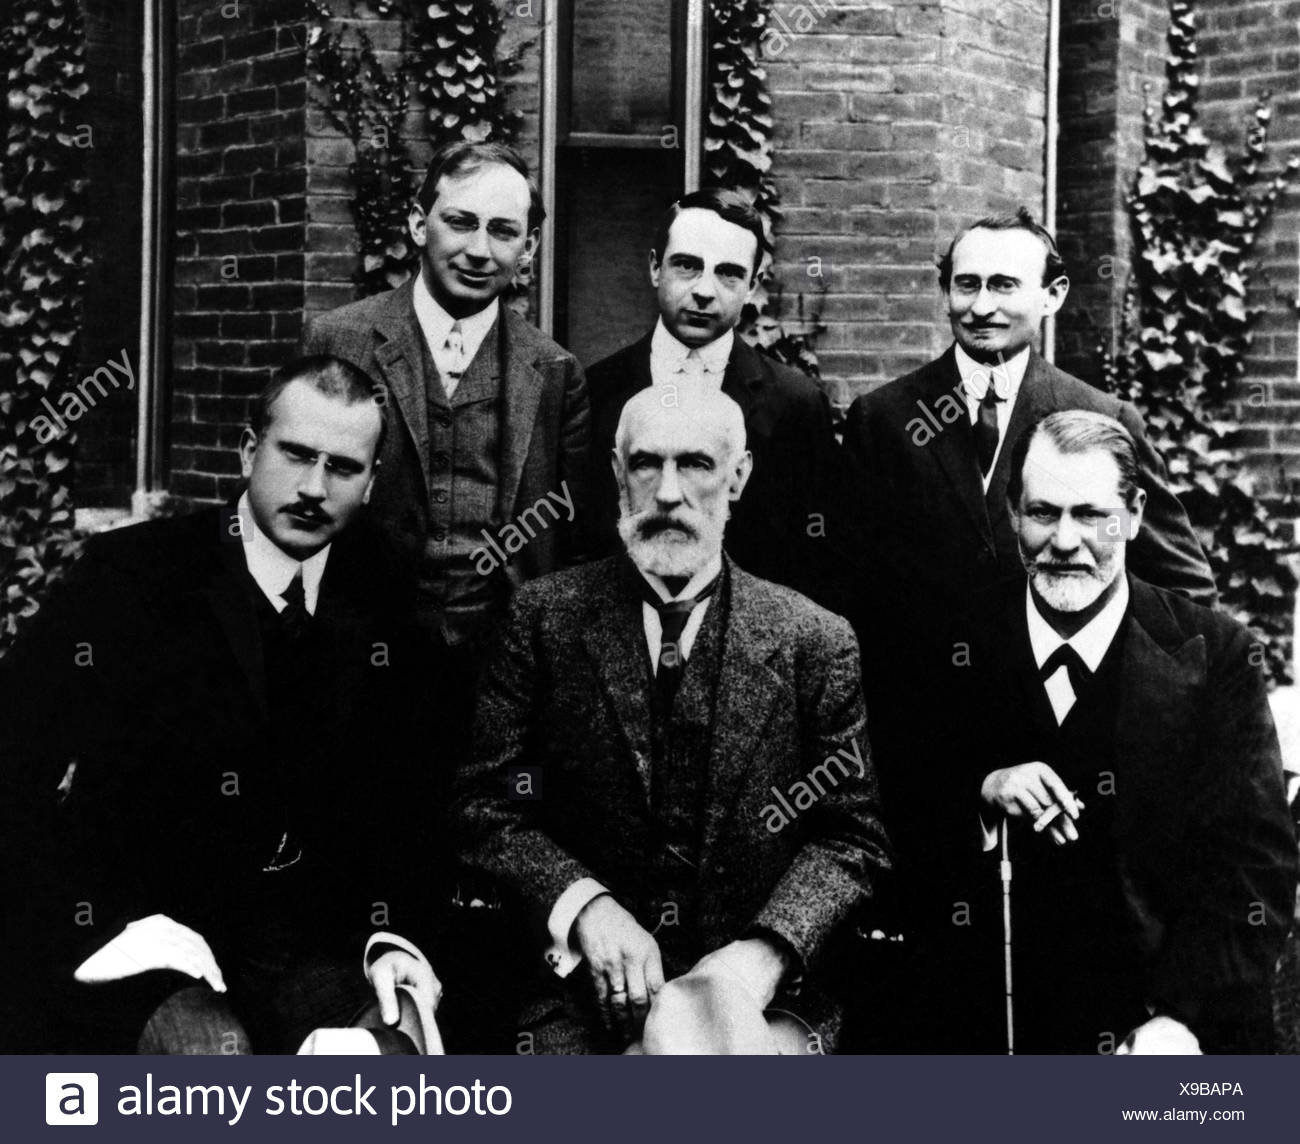 Freud, Sigmund, 6.5.1856 - 23.9.1939, Austrian physician, founder of the psychoanalytic school of psychology (centre), with Abraham A. Brill, Ernest Jones, Sandor Ferenczi, G. Stanley Hall, Carl Gustav Jung, Clark University, Worchester, Mass., USA, , Additional-Rights-Clearances-NA - Stock Image